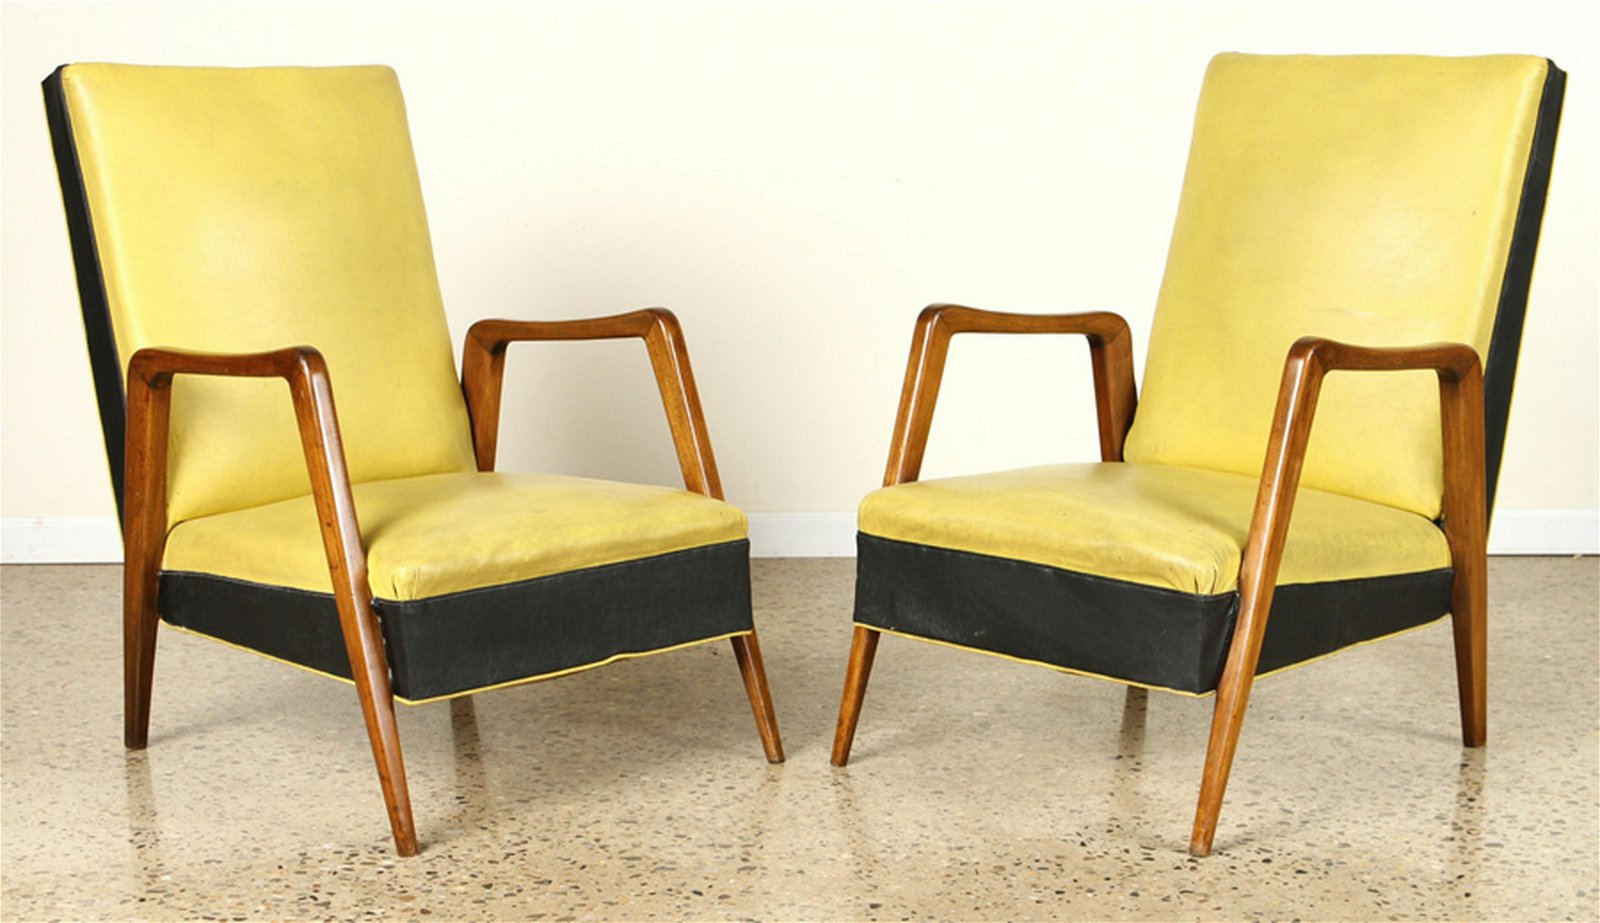 PAIR MID CENTURY MODERN FRENCH OPEN ARM CHAIRS